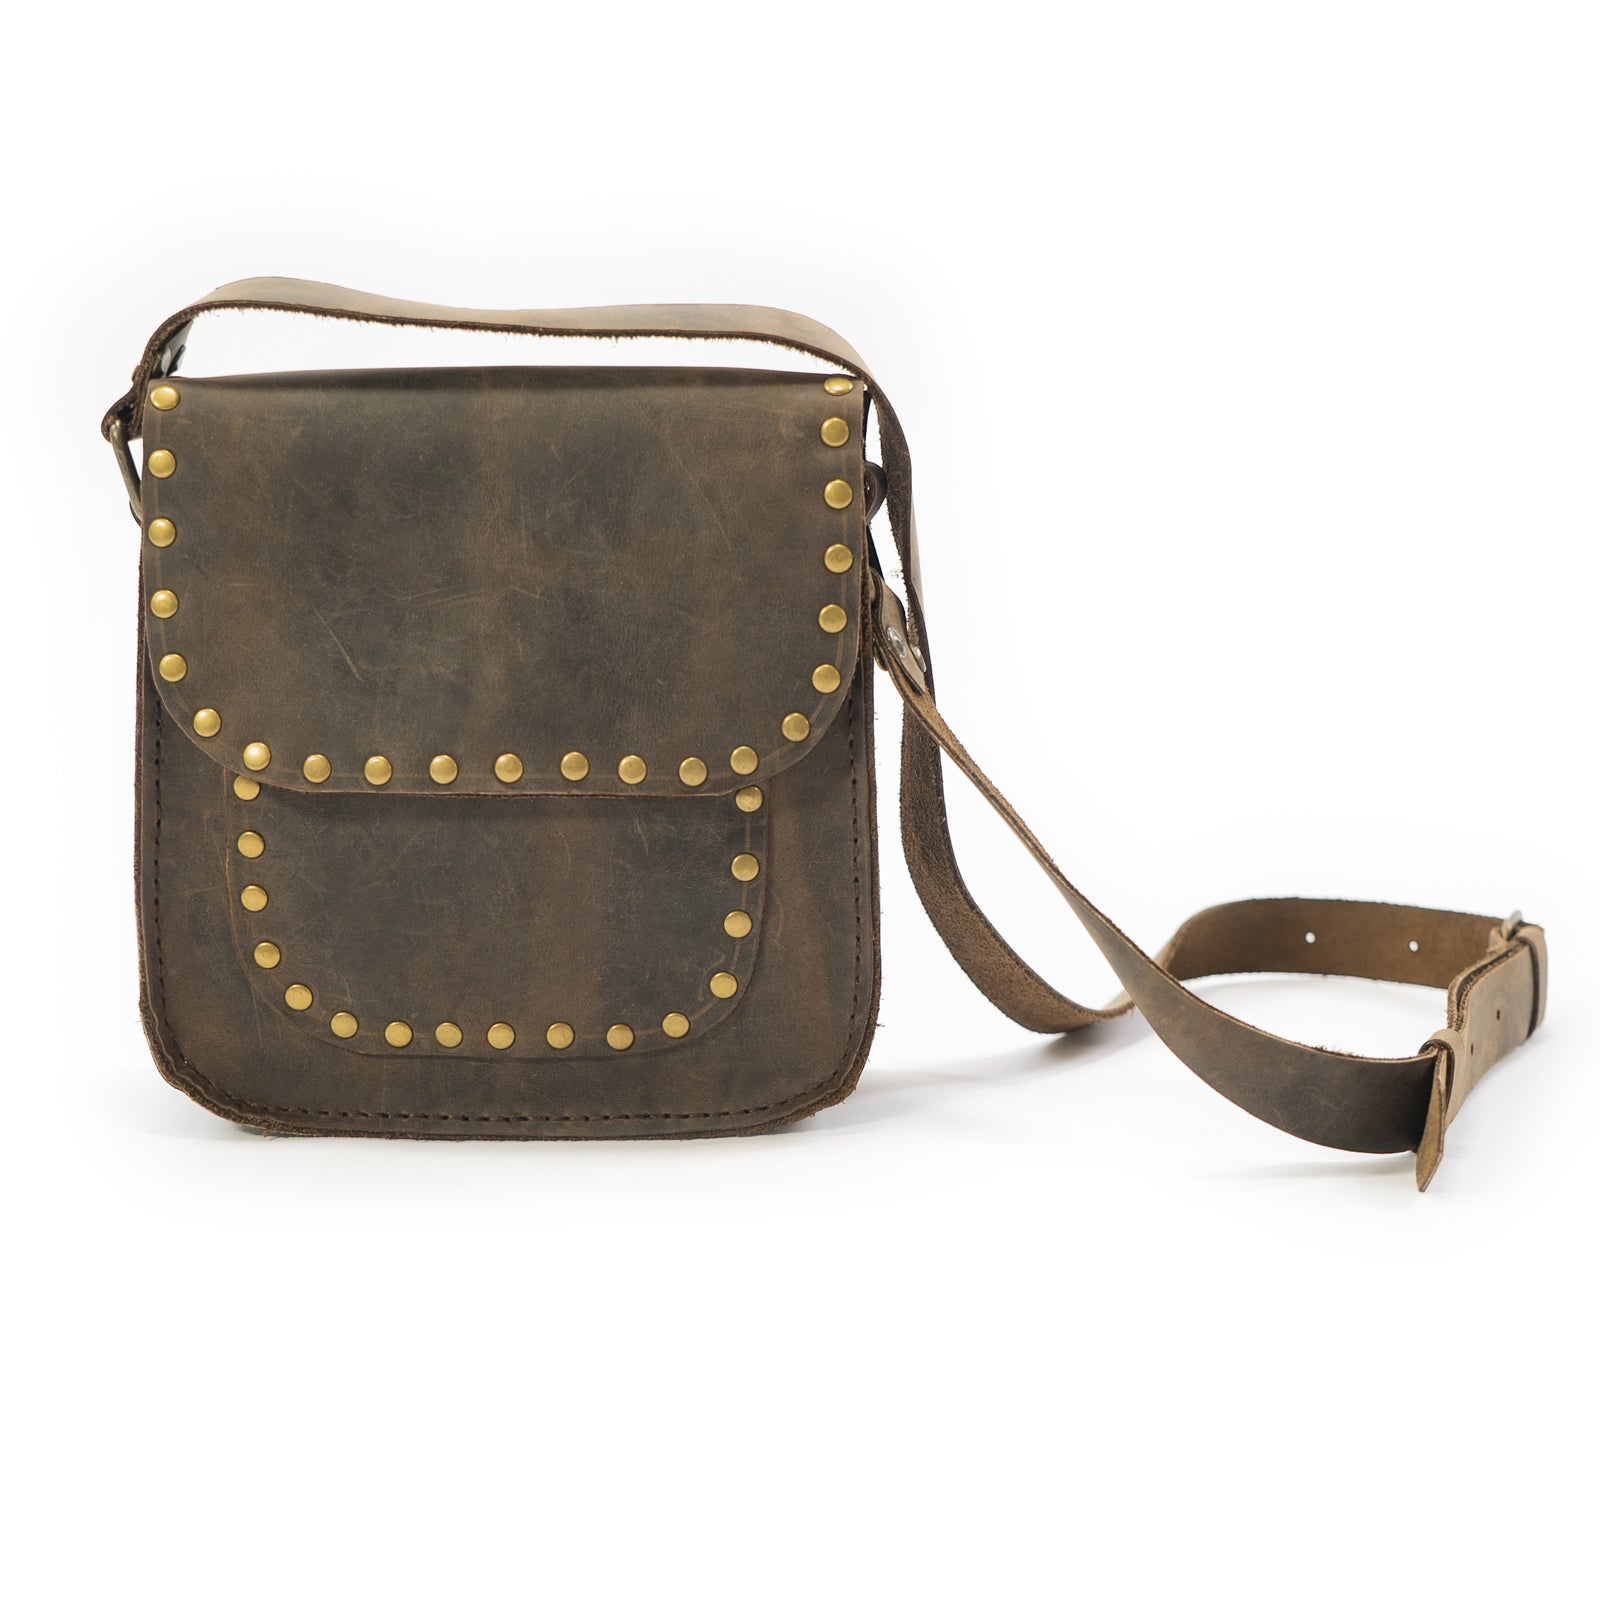 Derifix Fantastico Women's Handmade Leather Bag